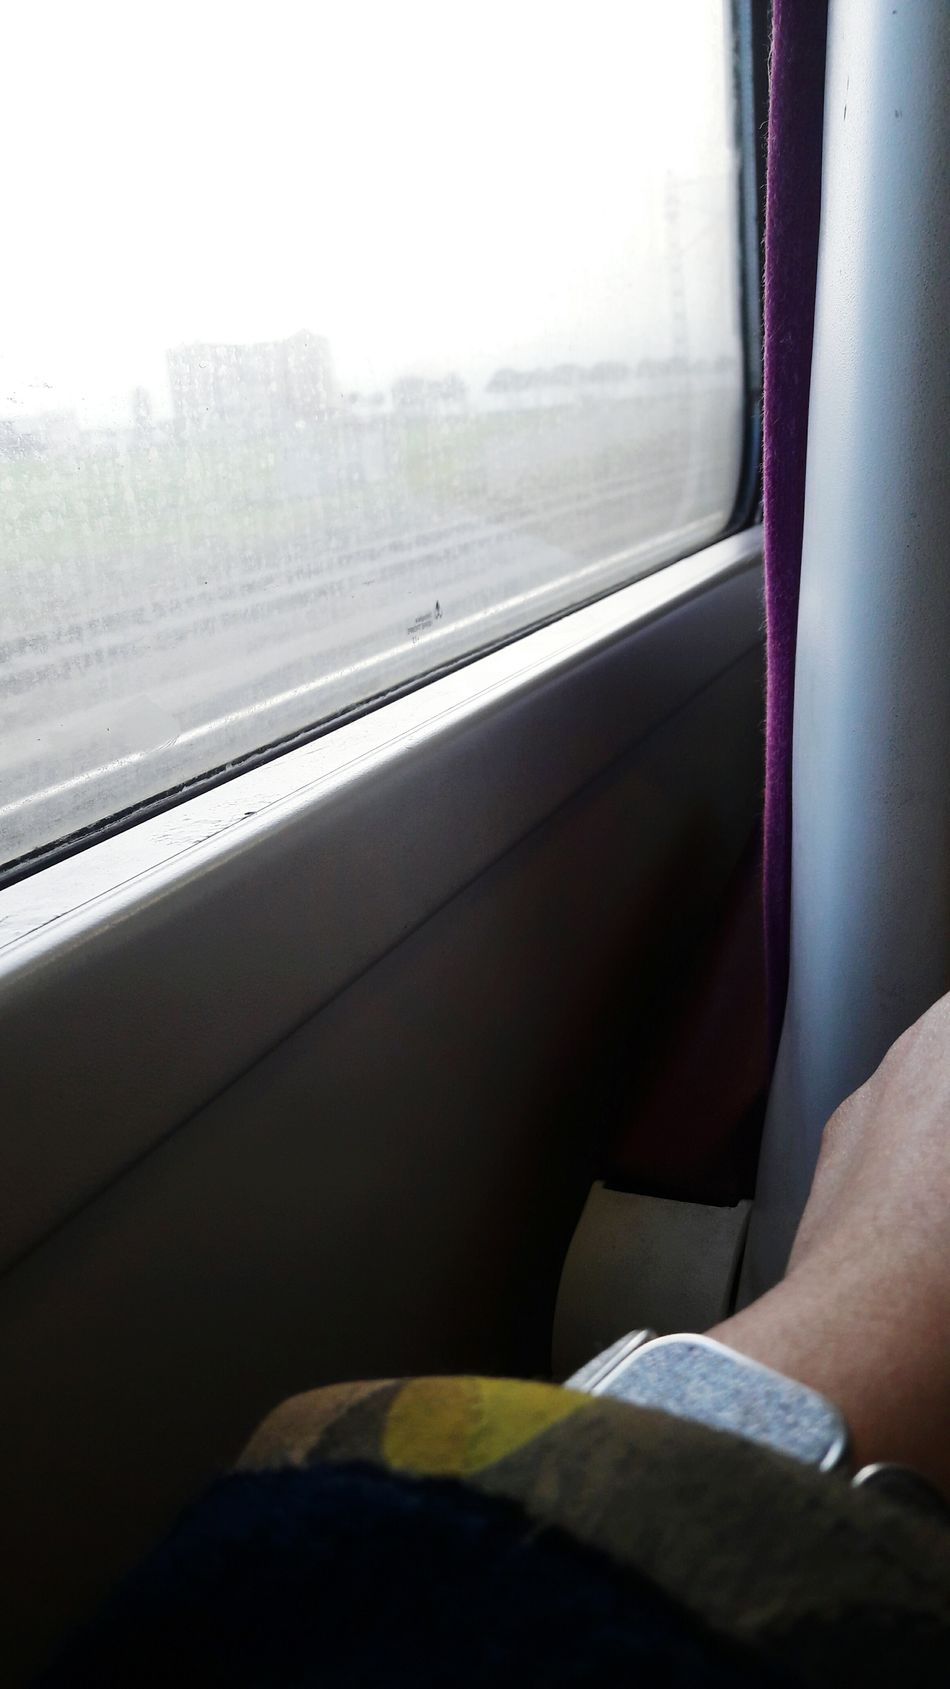 Train_of_our_world Journey Day Train - Vehicle Transportation Window Travel Vehicle Seat Vehicle Interior Sitting Public Transportation Close-up Adults Only Train Interior Indoors  People